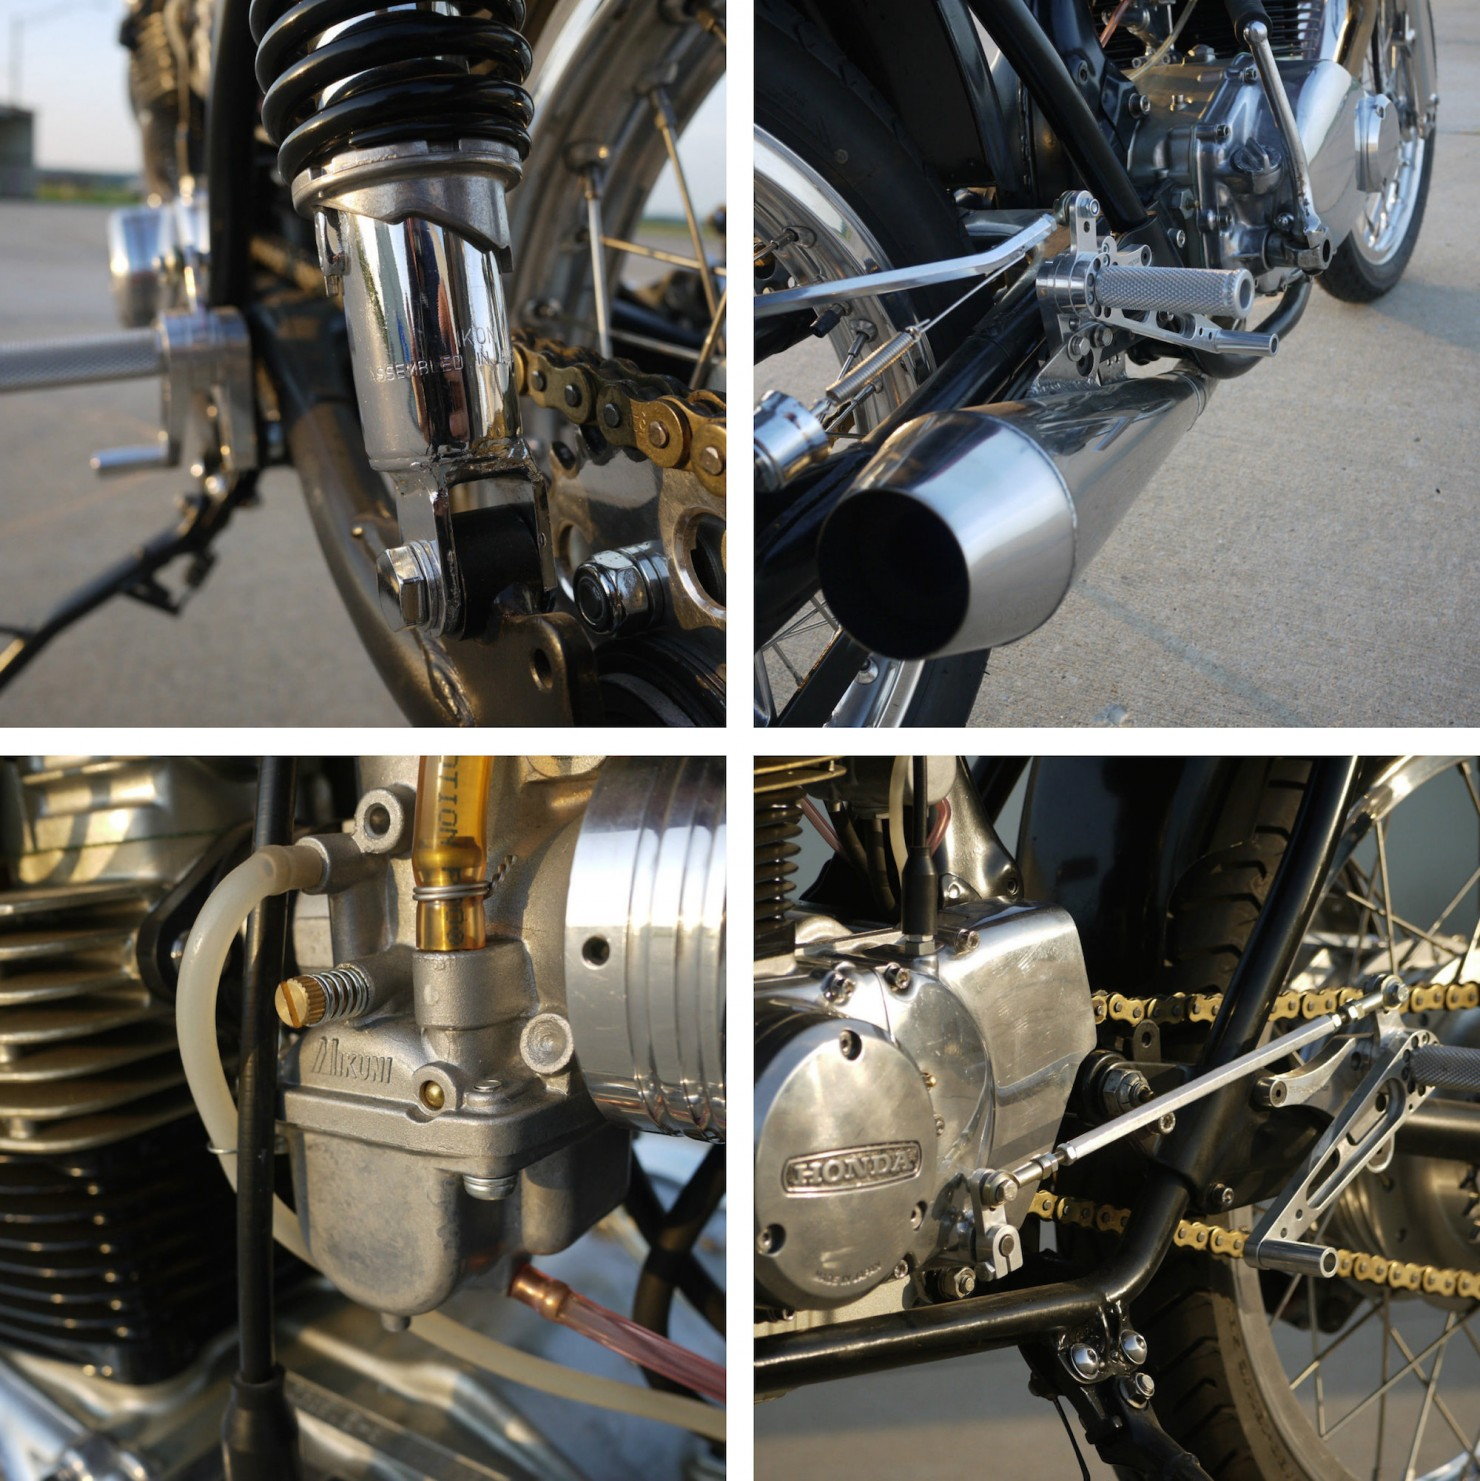 Honda_CB350_Cafe_Racer_Collage